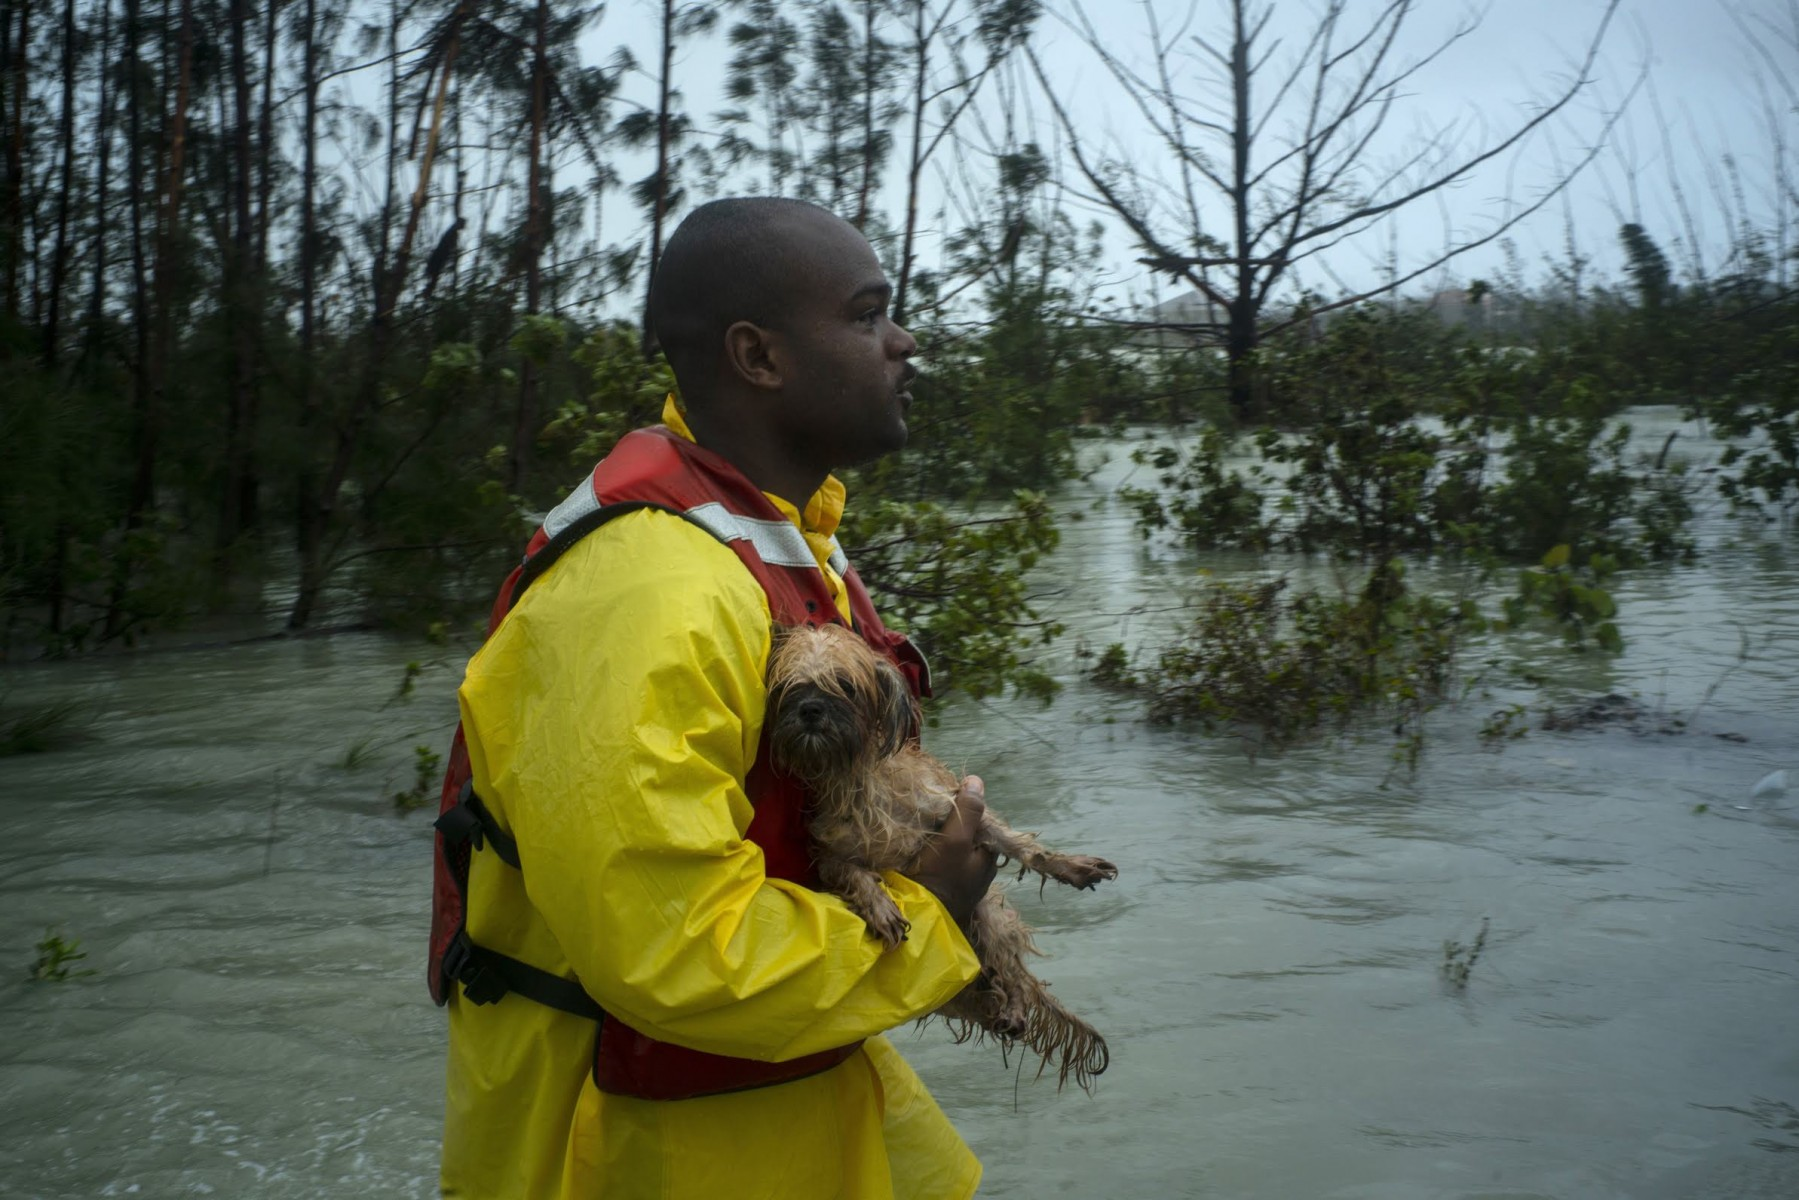 A volunteer looks for the owner of a dog he rescued from the rising waters of Hurricane Dorian, on a flooded road near the Causarina bridge in Freeport, Grand Bahama, Bahamas, Tuesday, Sept. 3, 2019. The storm's punishing winds and muddy brown floodwaters devastated thousands of homes, crippled hospitals and trapped people in attics. (AP Photo/Ramon Espinosa)